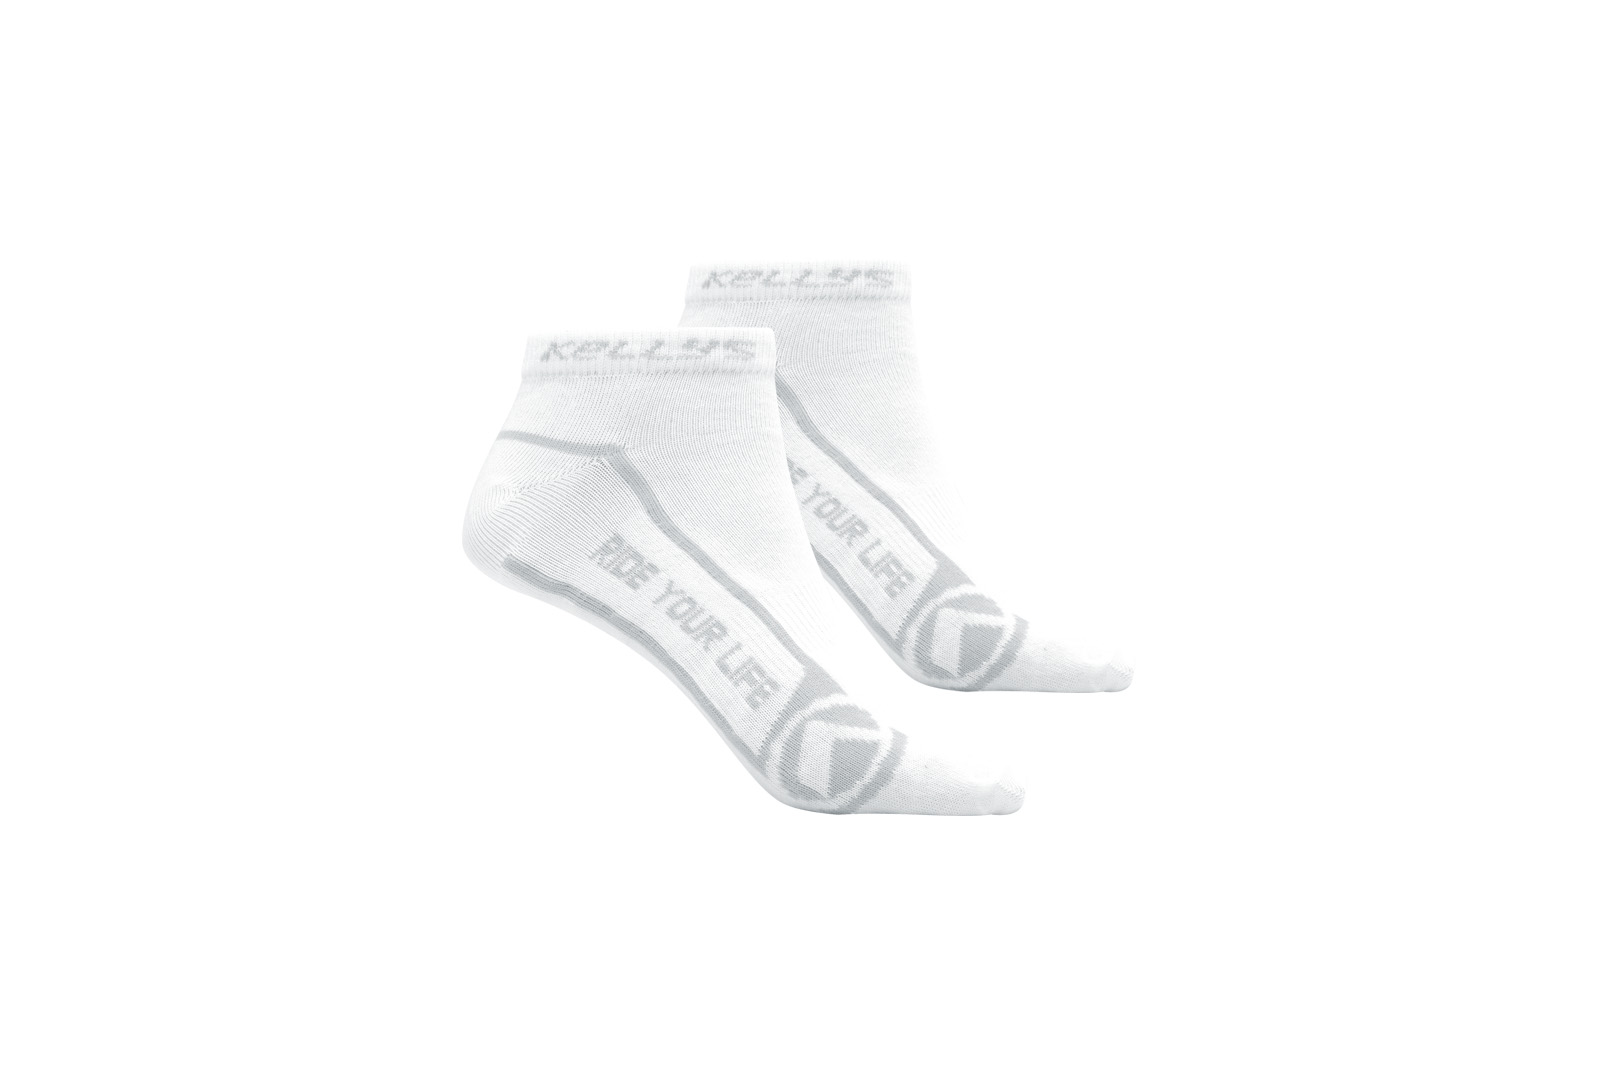 Socken KELLYS FIT white 38-42 - bagier Sports GmbH